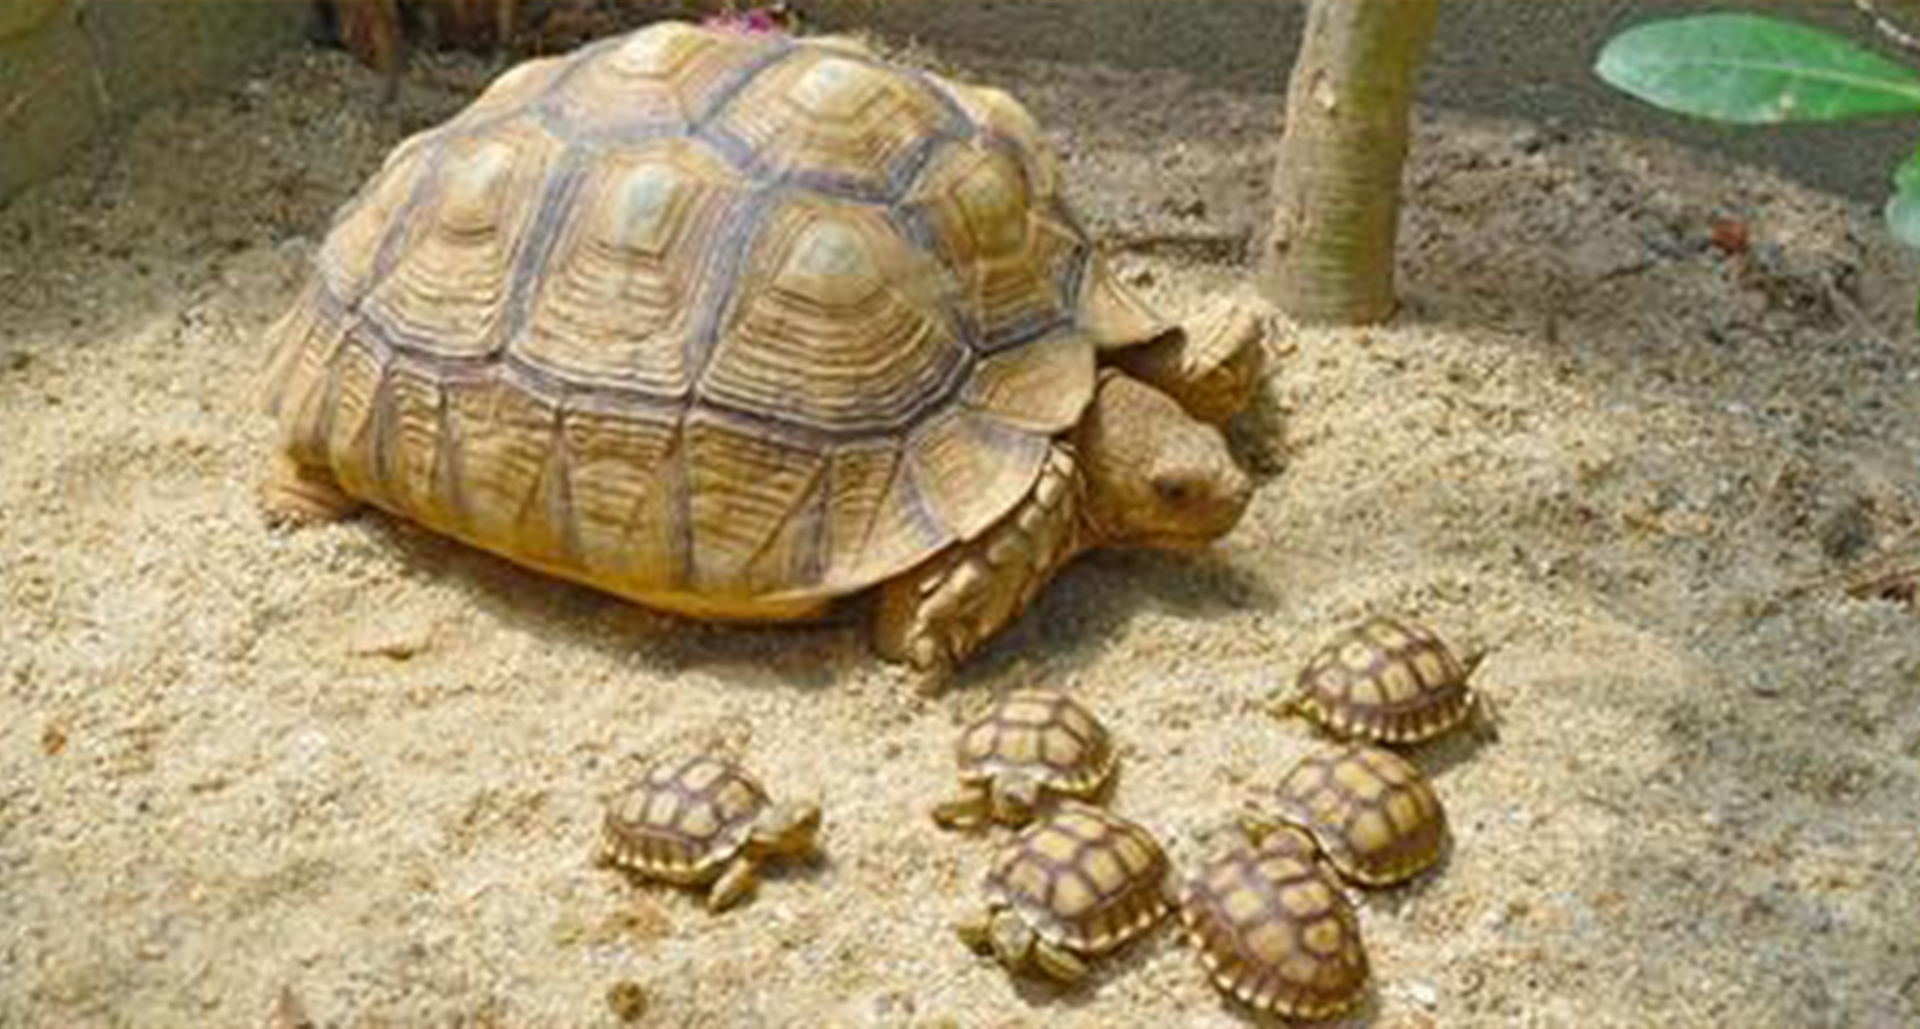 Care sheet for African Spurred Tortoise, Geochelone Sulcata